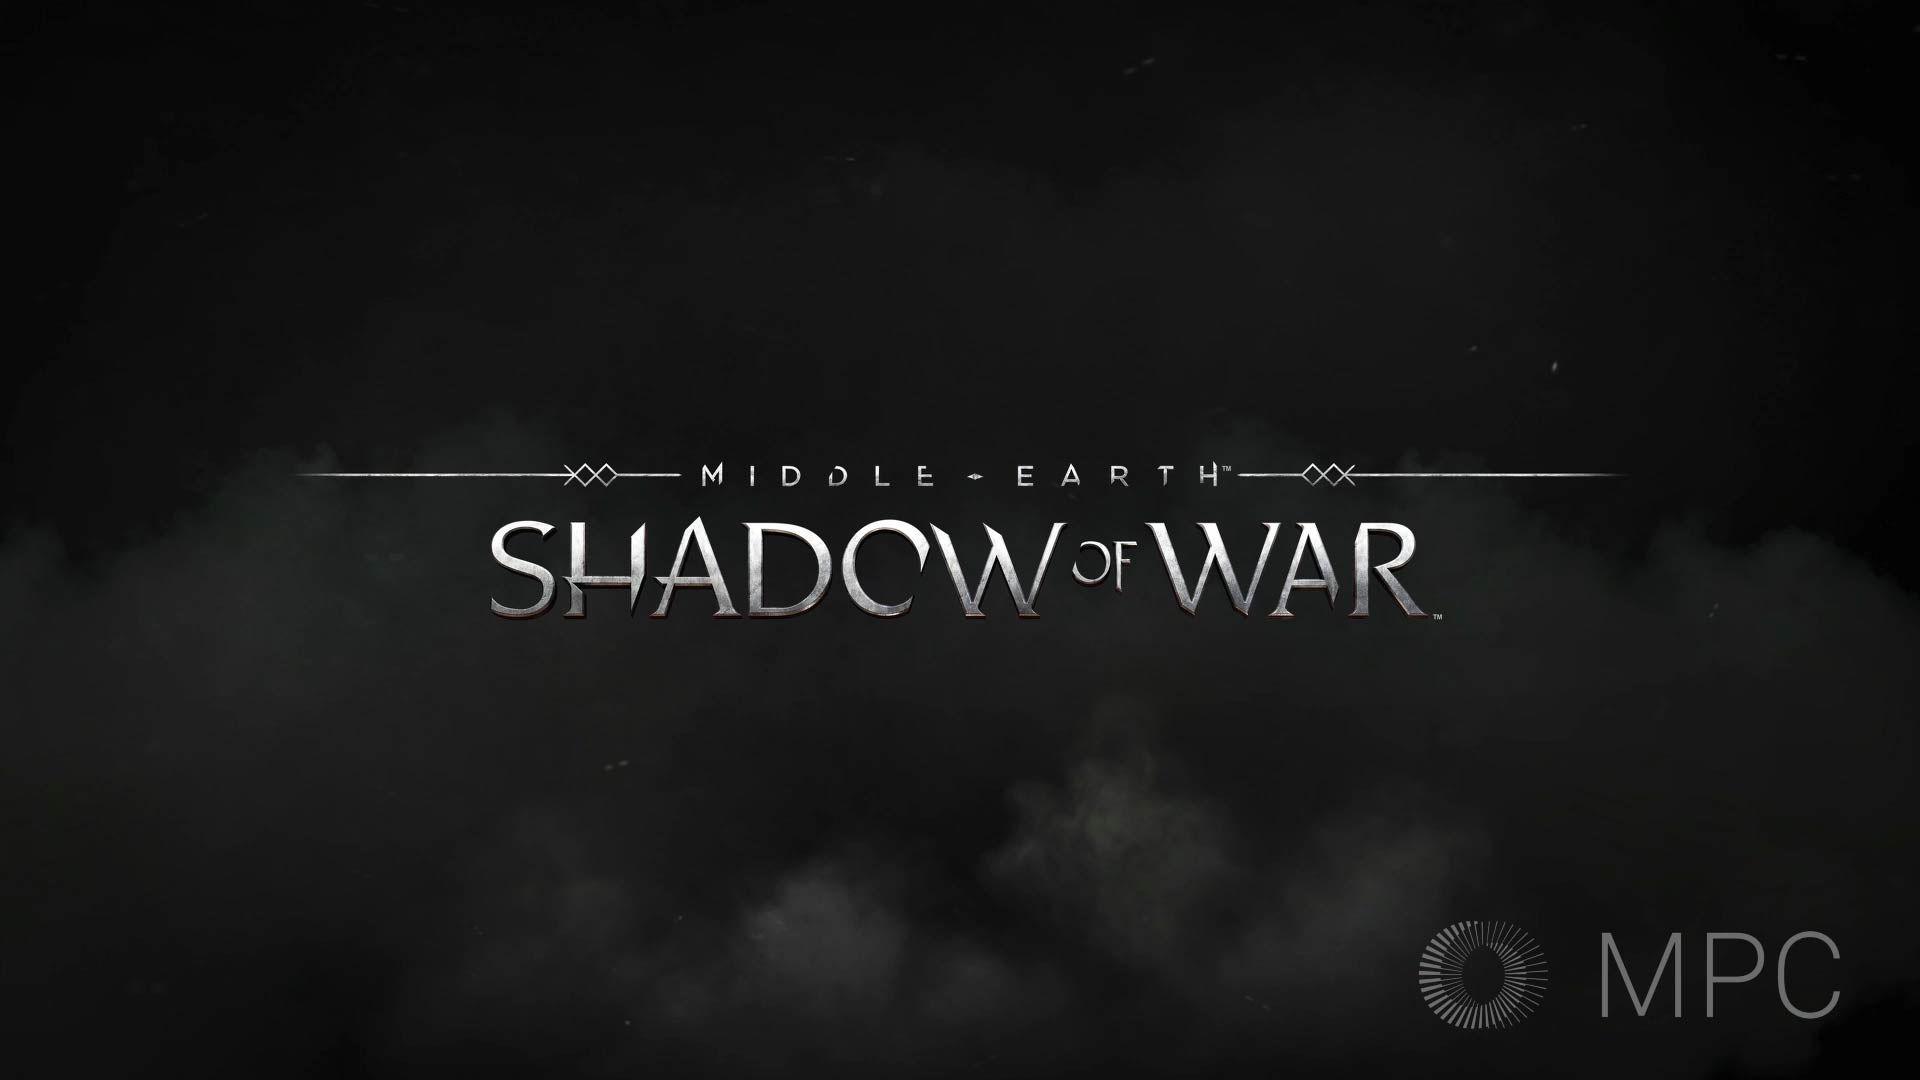 SHADOW OF WAR_TRAILER_02.jpg